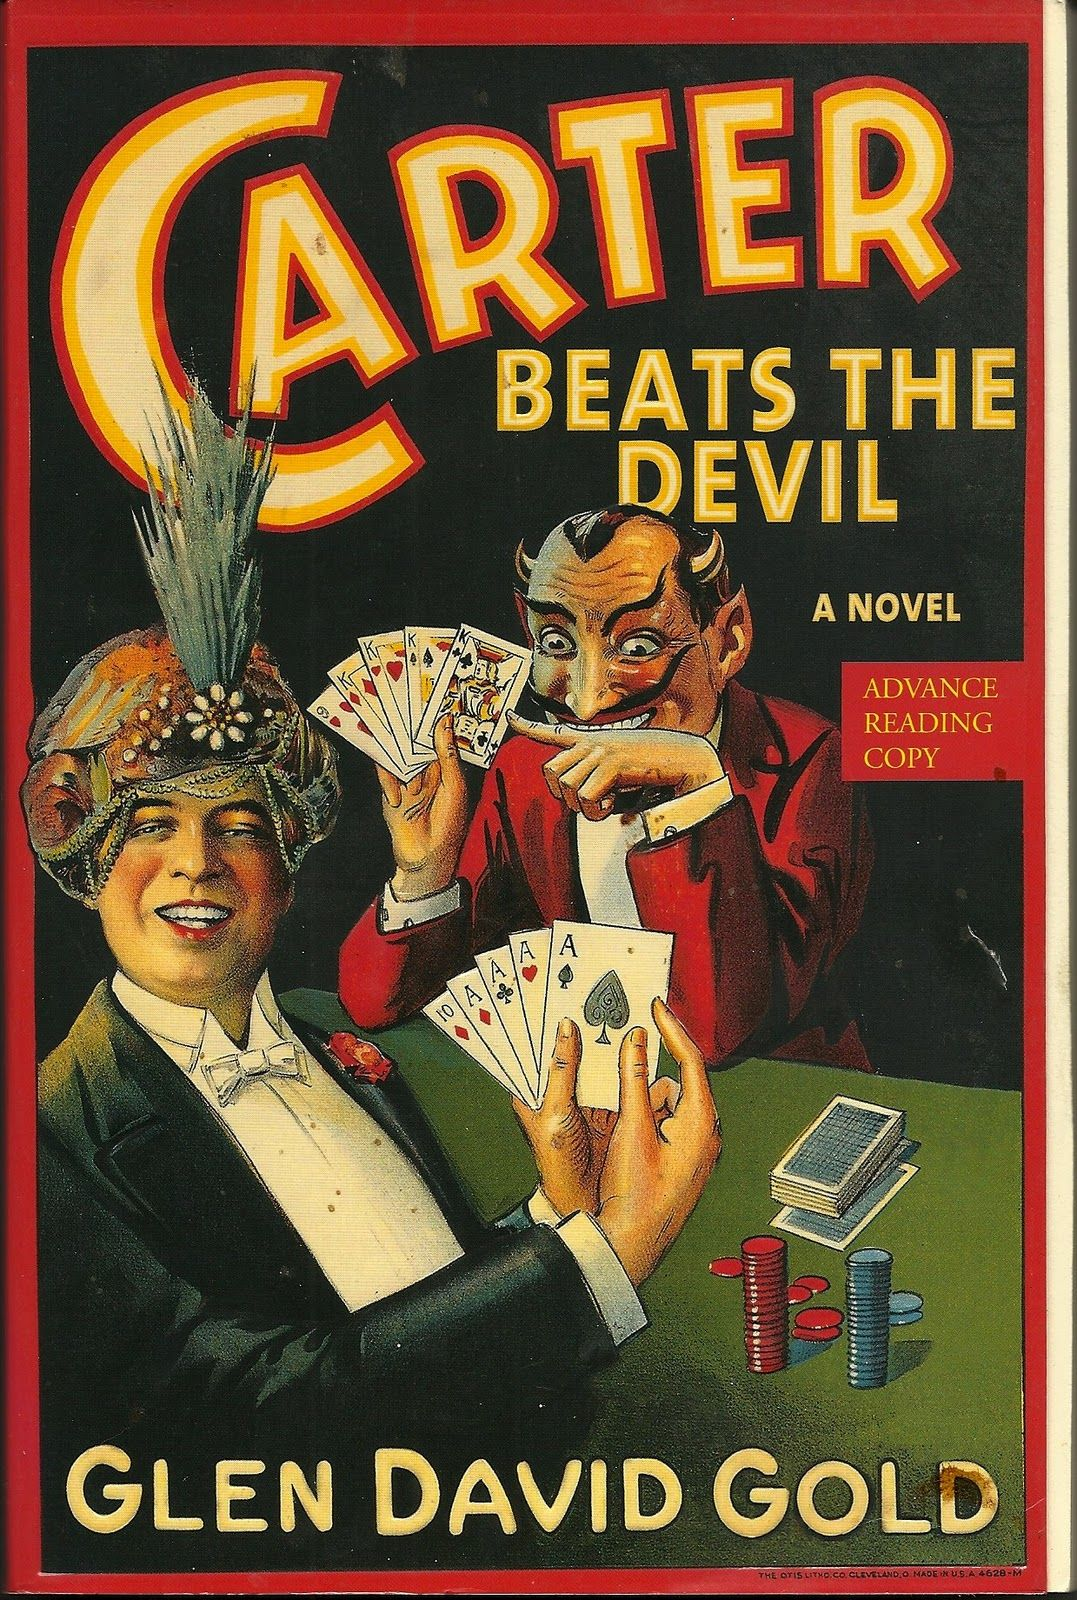 Carter Beats the Devil by Glen David Gold, historical fiction about the magician Charles Carter. Very interesting, engaging, and funny.